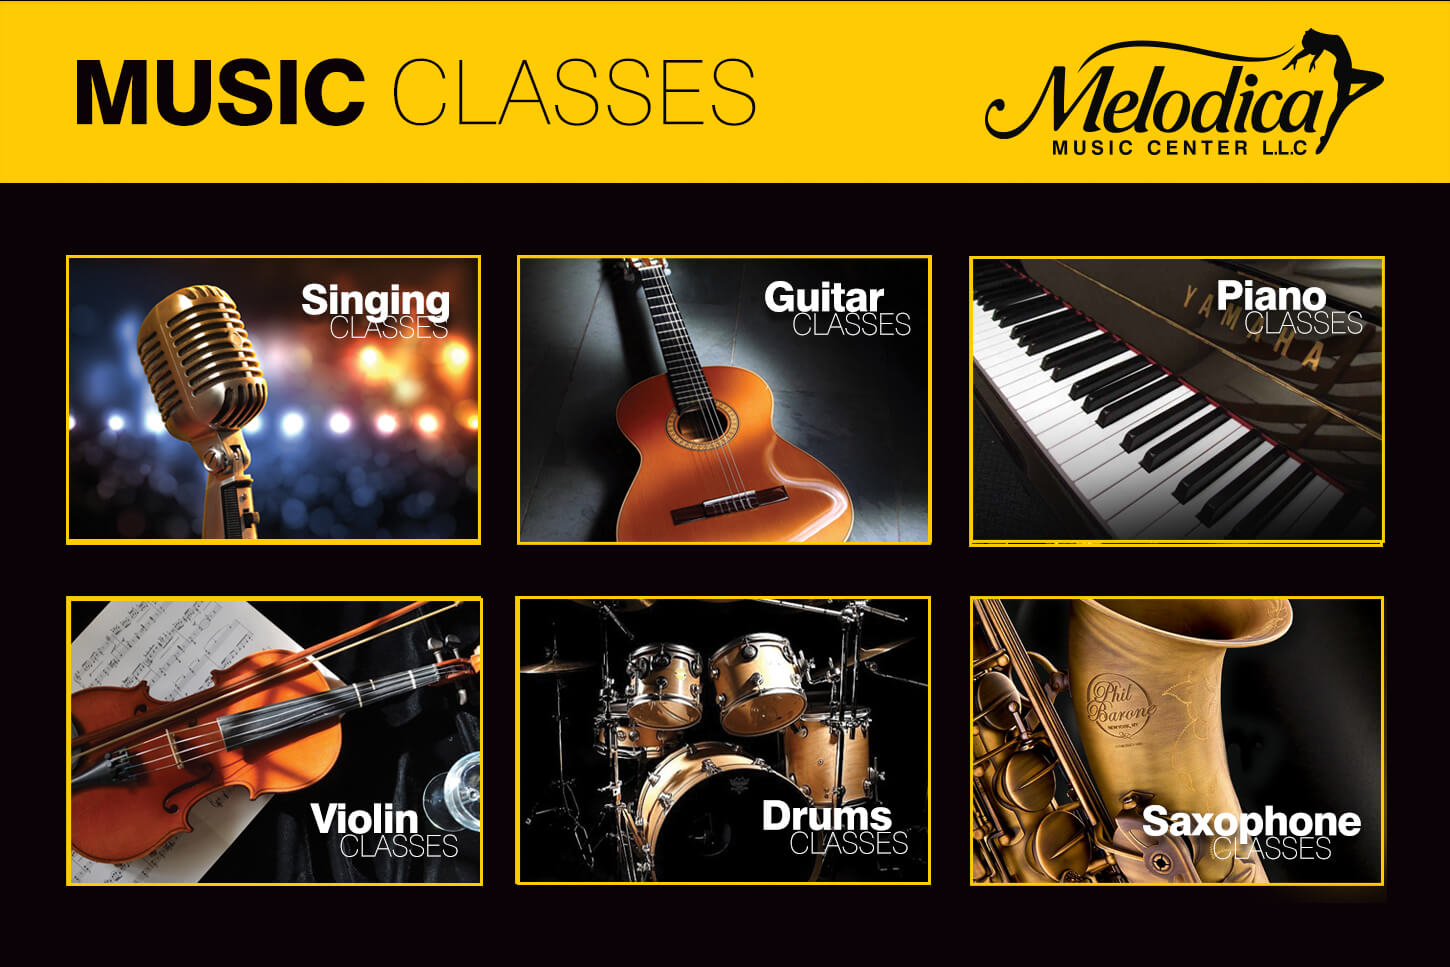 Melodica Music Classes